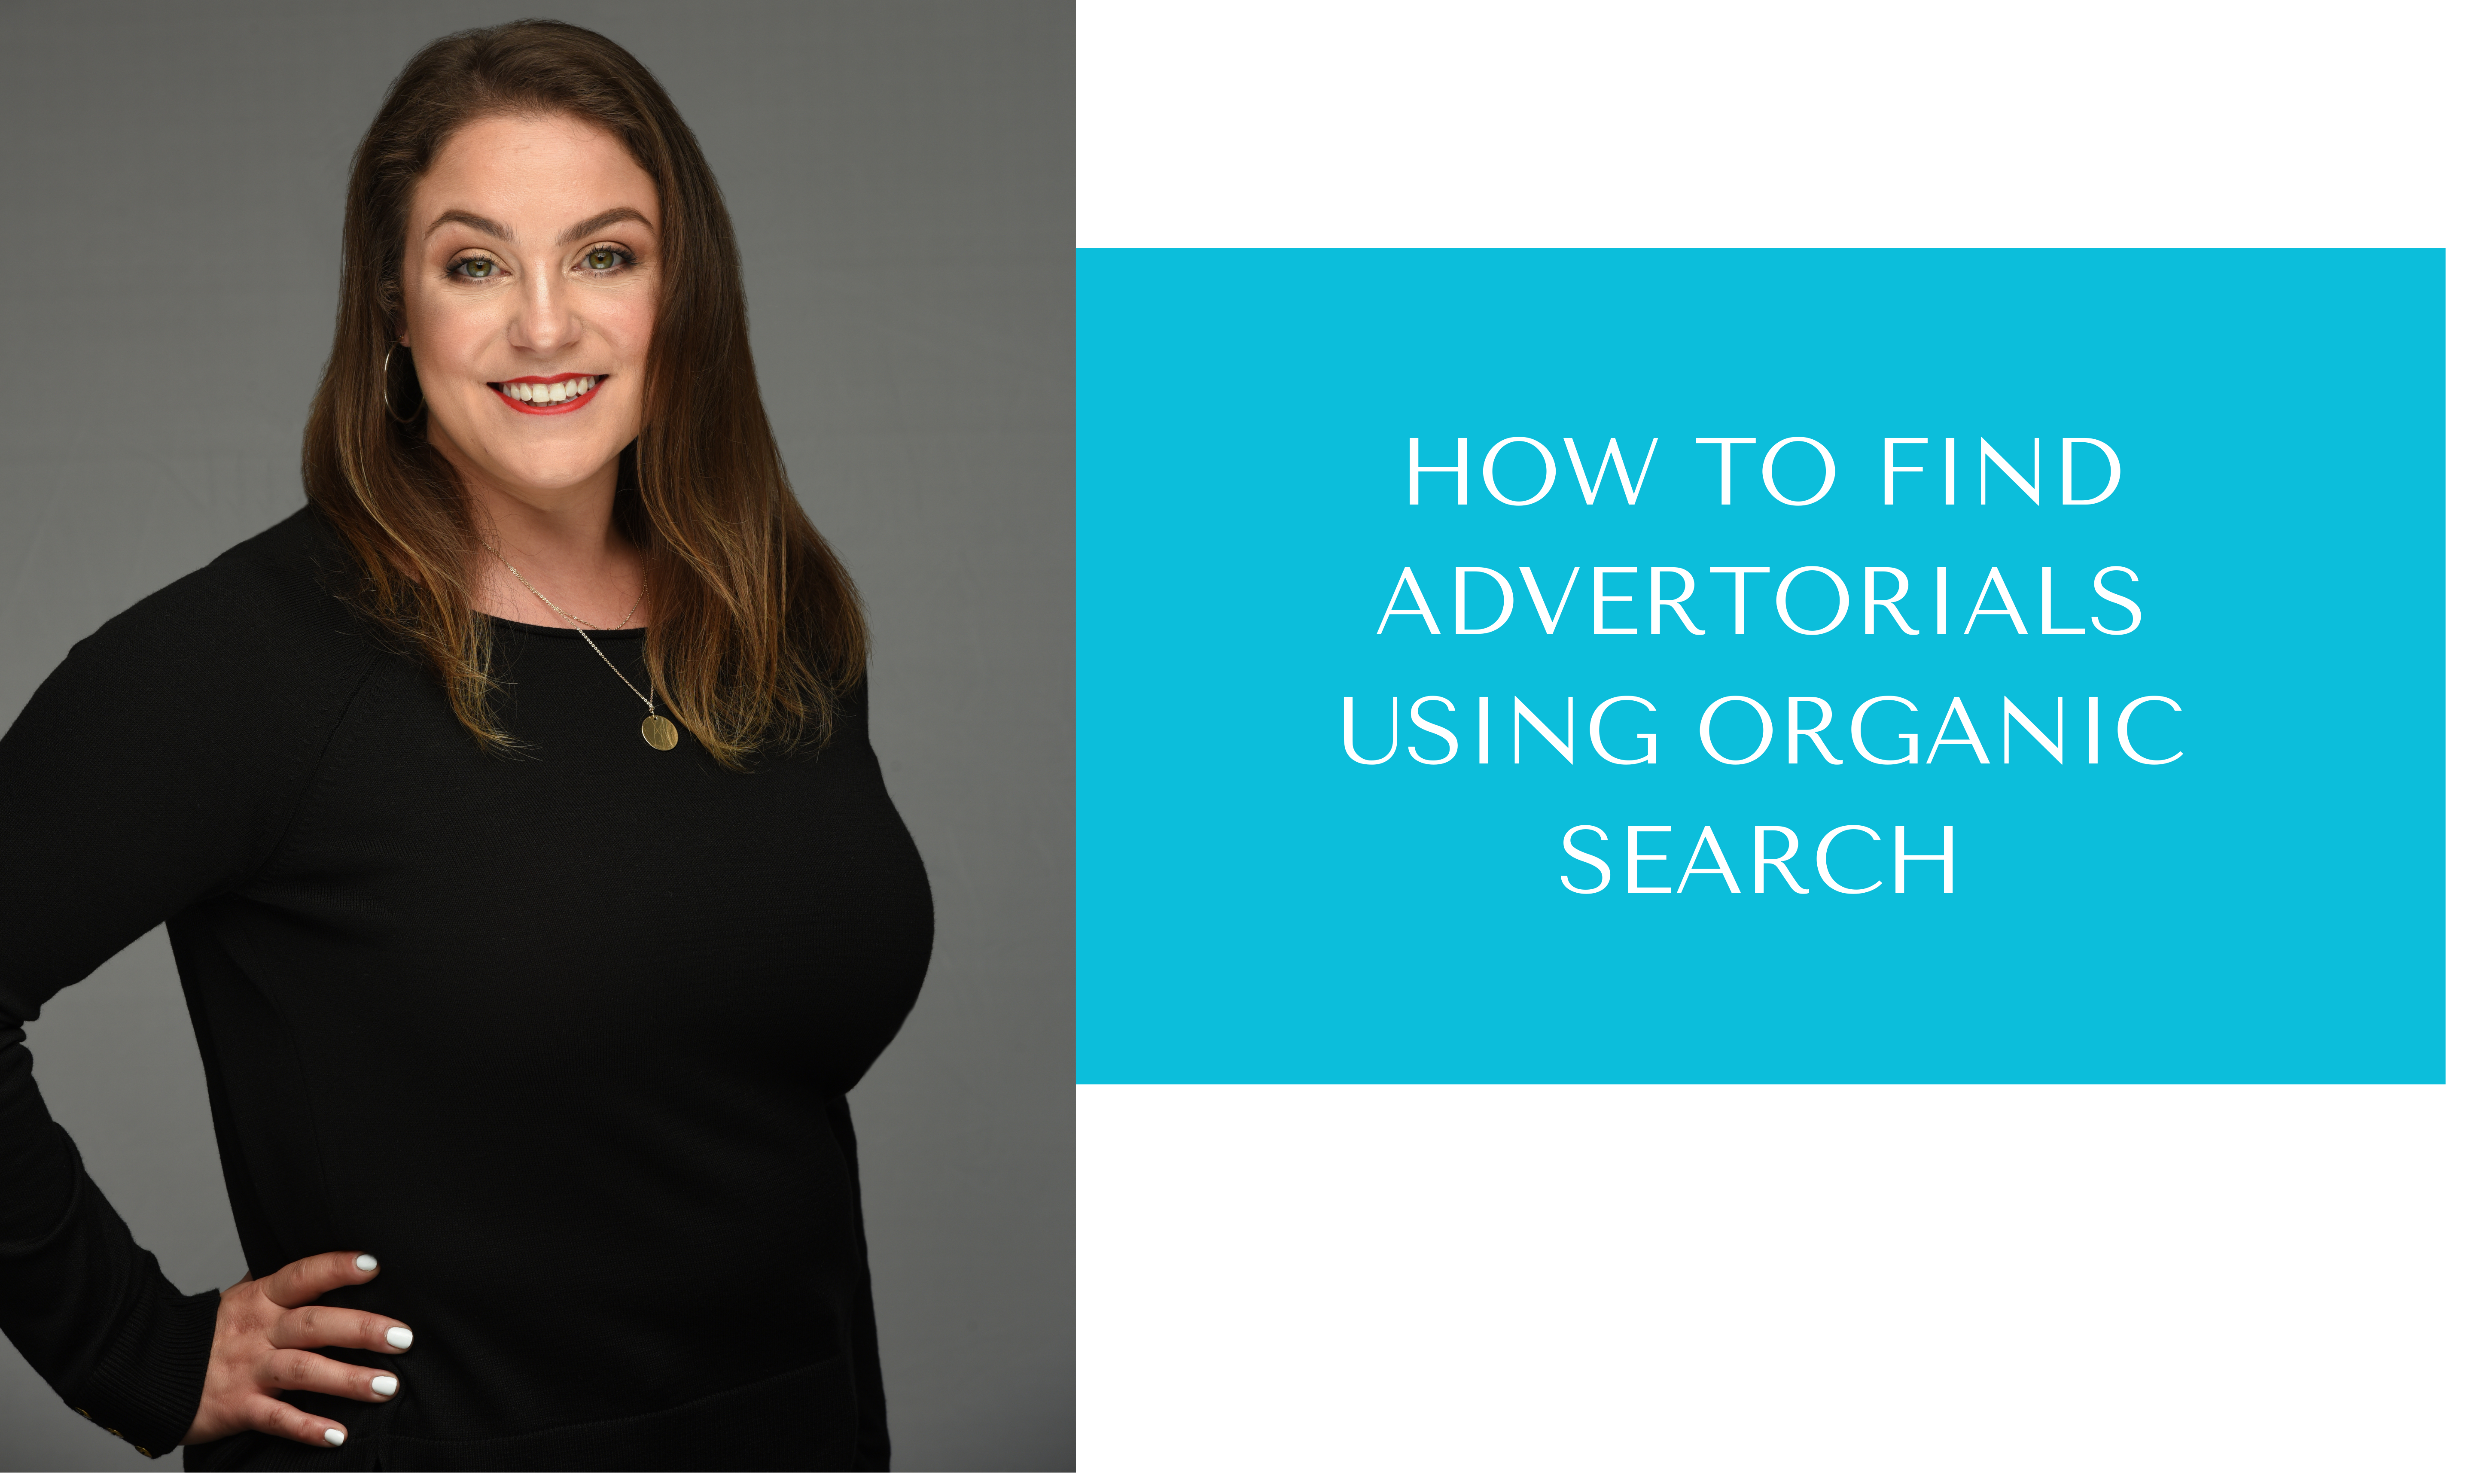 Researching Advertorials Using Organic Search